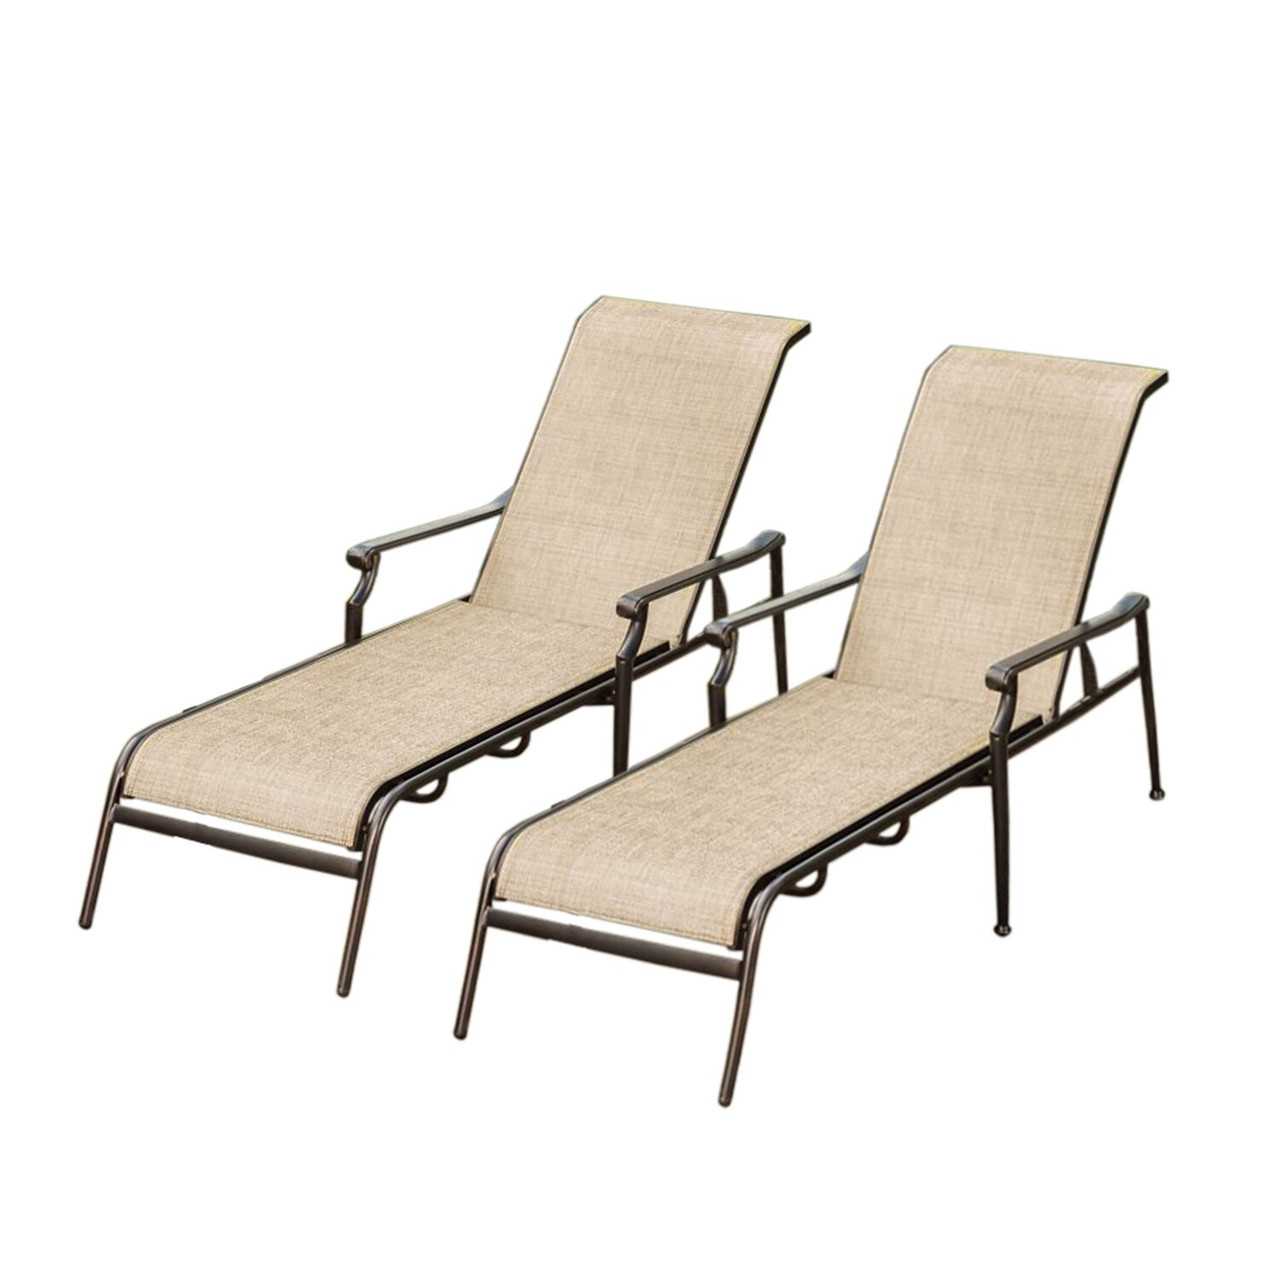 Pool Chaise Lounge Chairs Set Of 2 Beige And Brown Outdoor Aluminum Reclining Patio Chaise Lounge Chairs 32738529